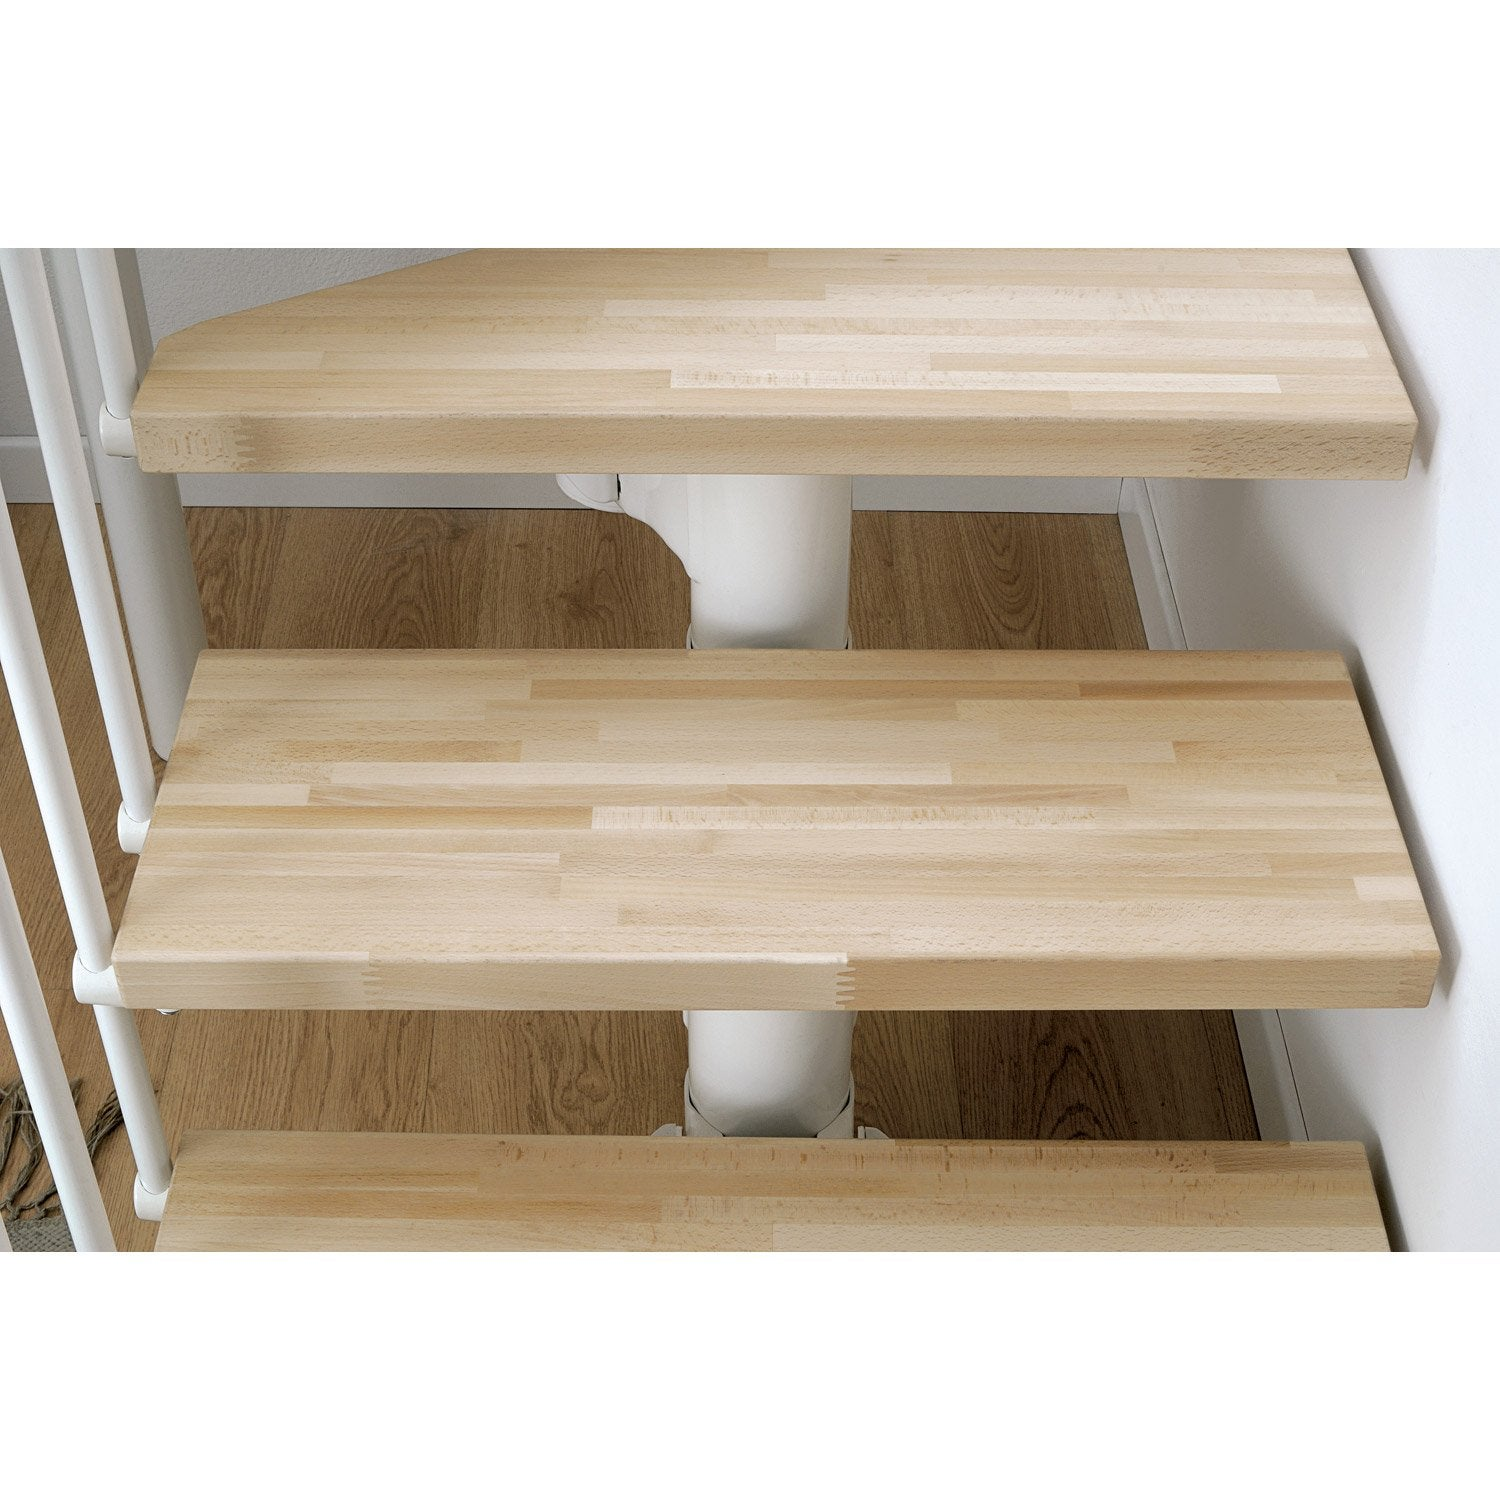 hauteur pour escalier long blanc bois clair larg 90 cm leroy merlin. Black Bedroom Furniture Sets. Home Design Ideas